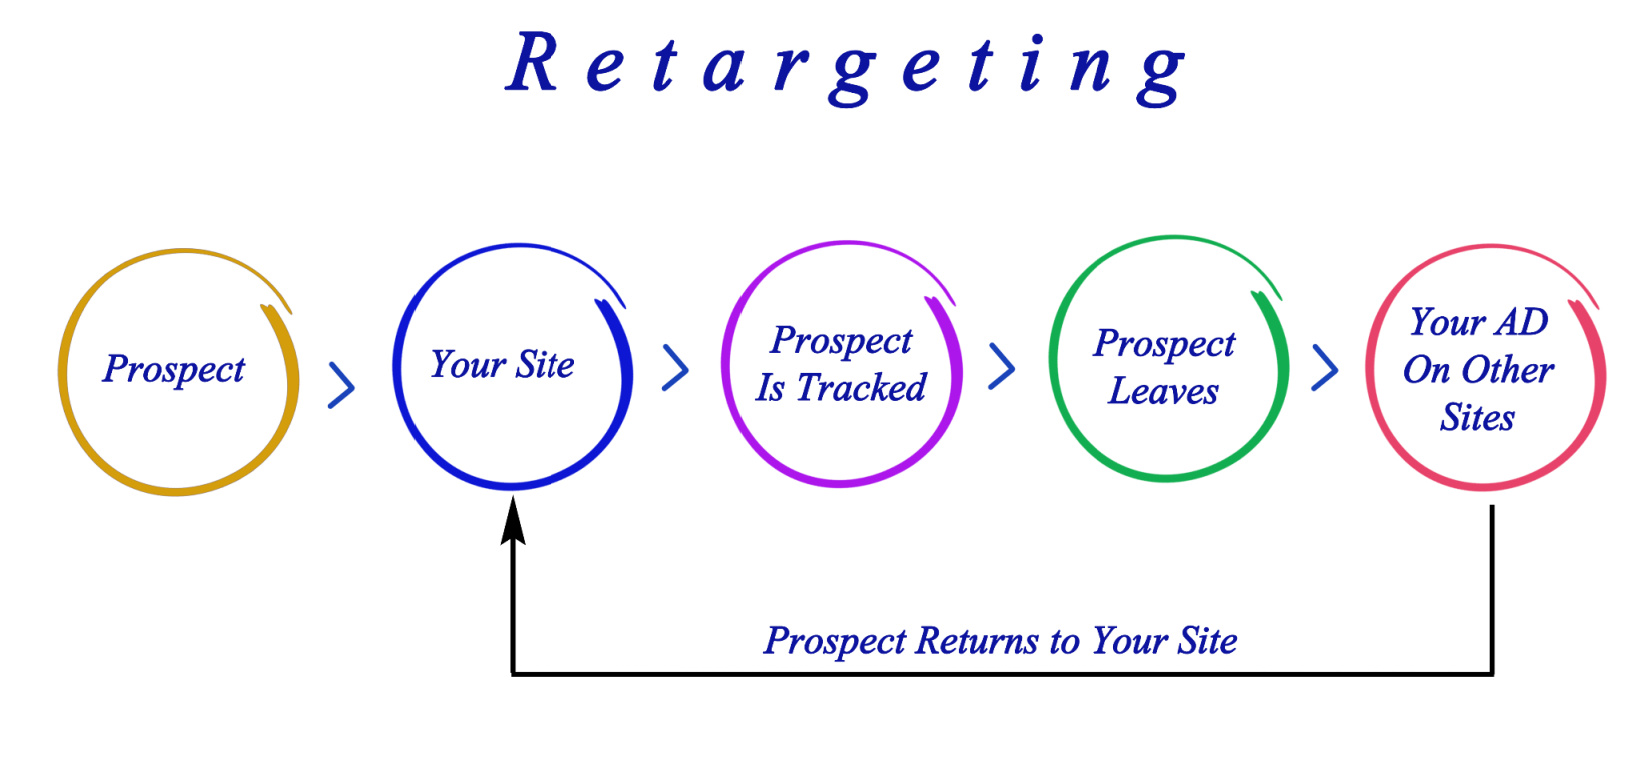 Facebook ads for dropshipping retargeting